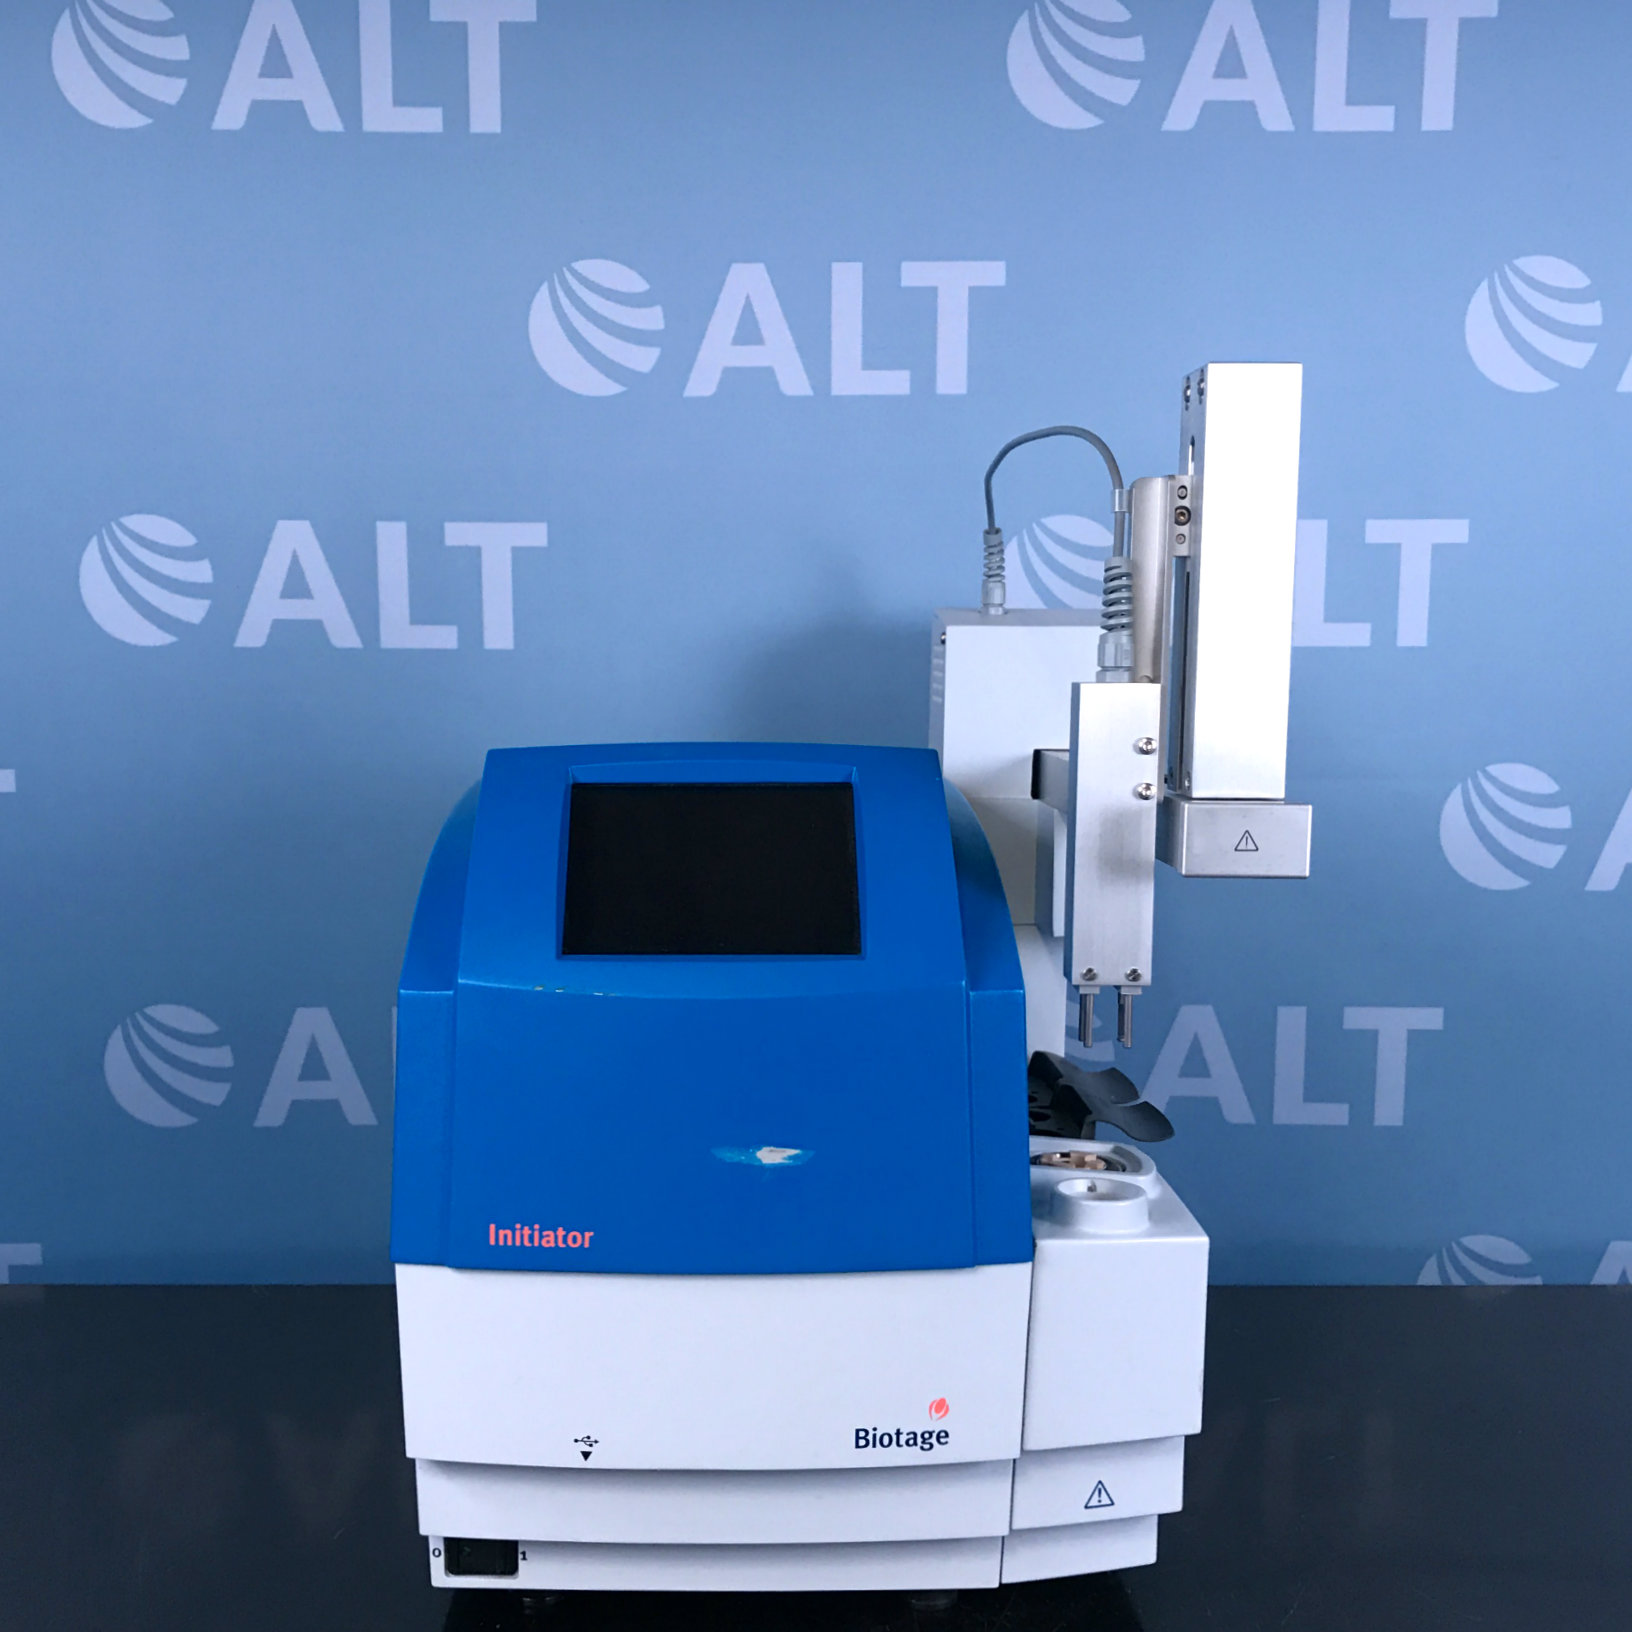 Biotage Initiator EXP US Microwave Reactor Synthesis System w Robot Eight Image